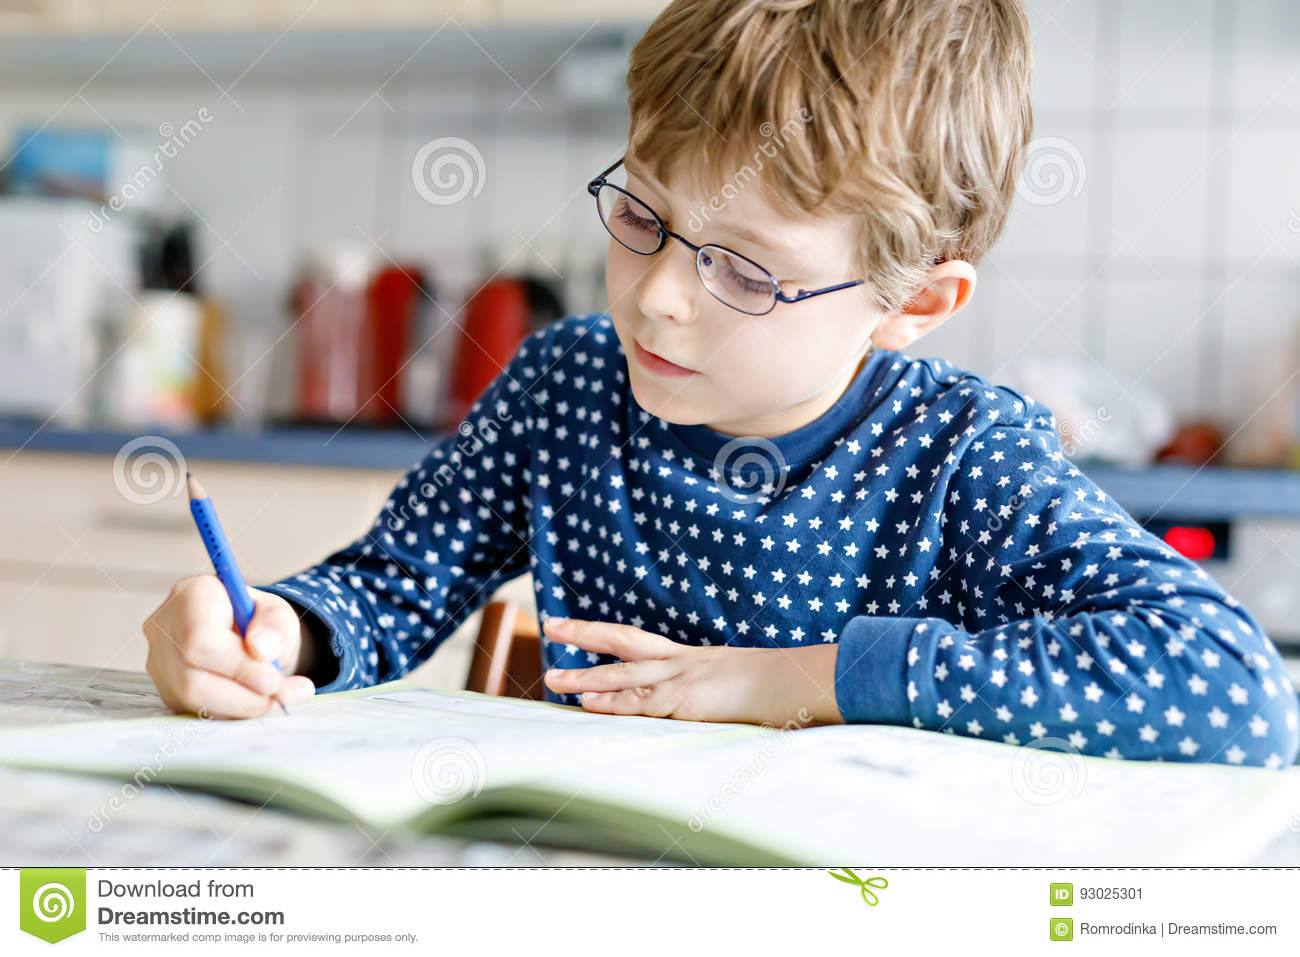 Preschool kid boy at home making homework writing letters with colorful pens